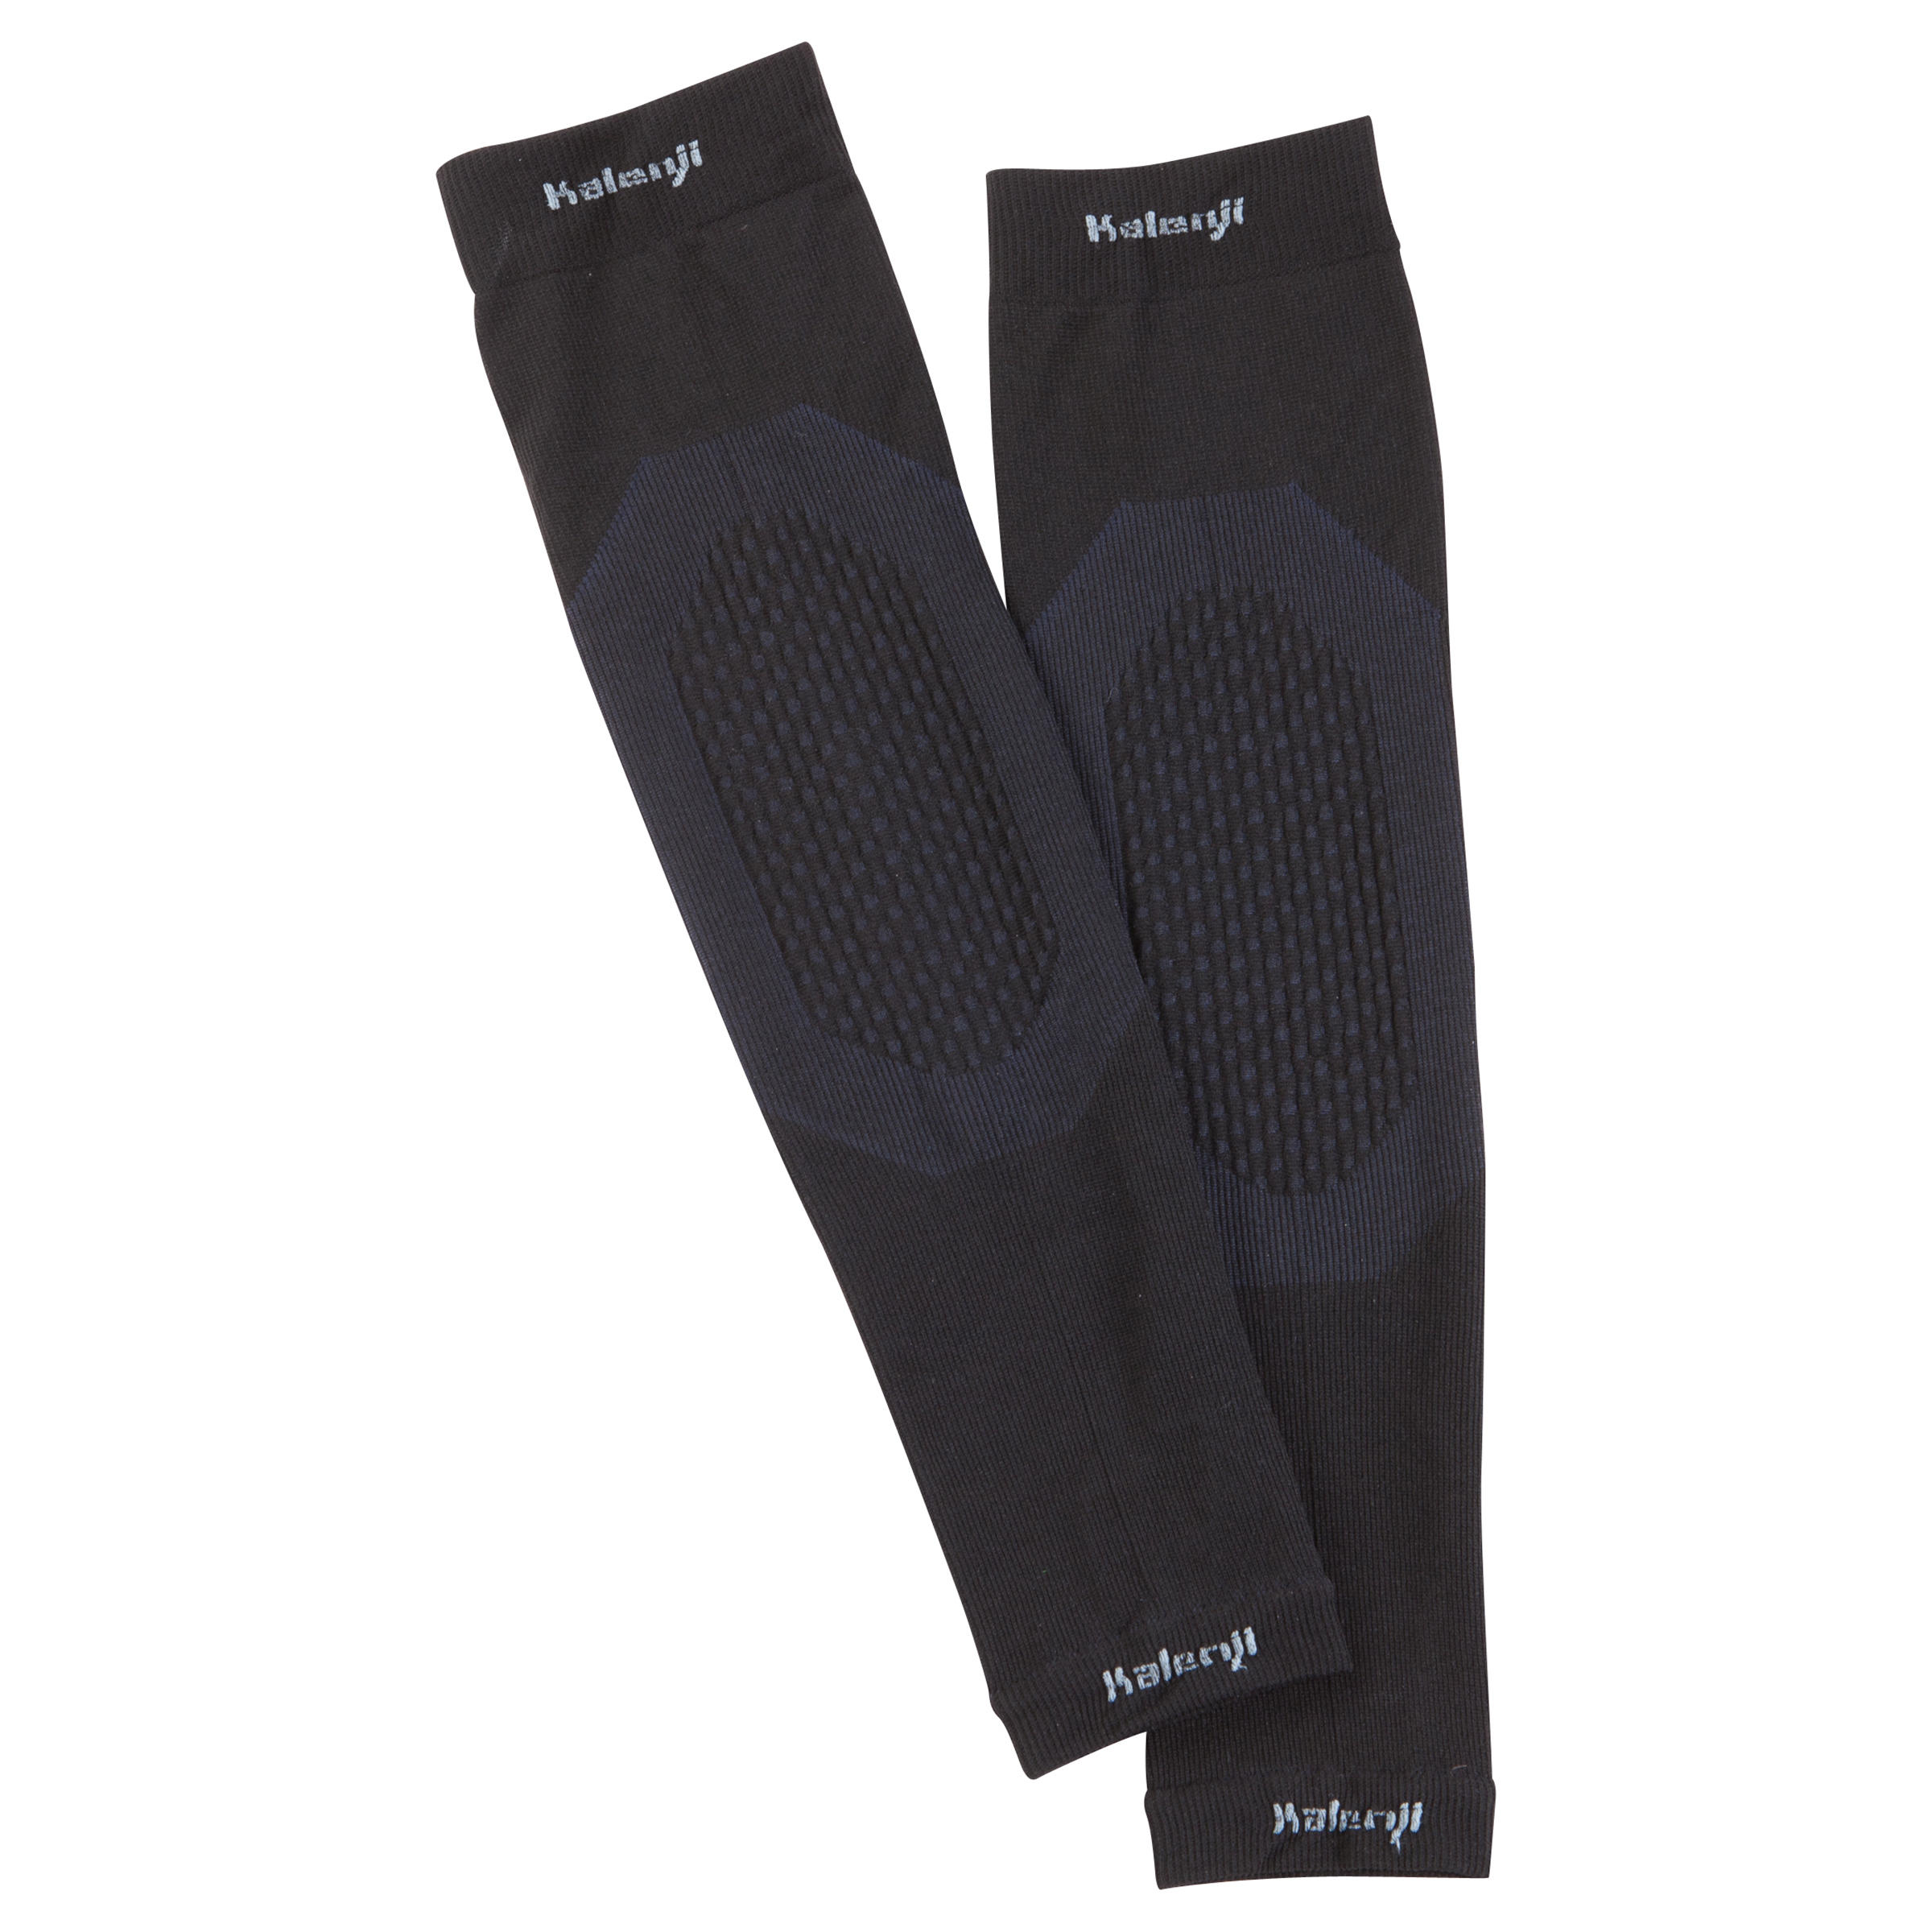 RUNNING ARM COVER BLACK PROTECTION FROM COLD